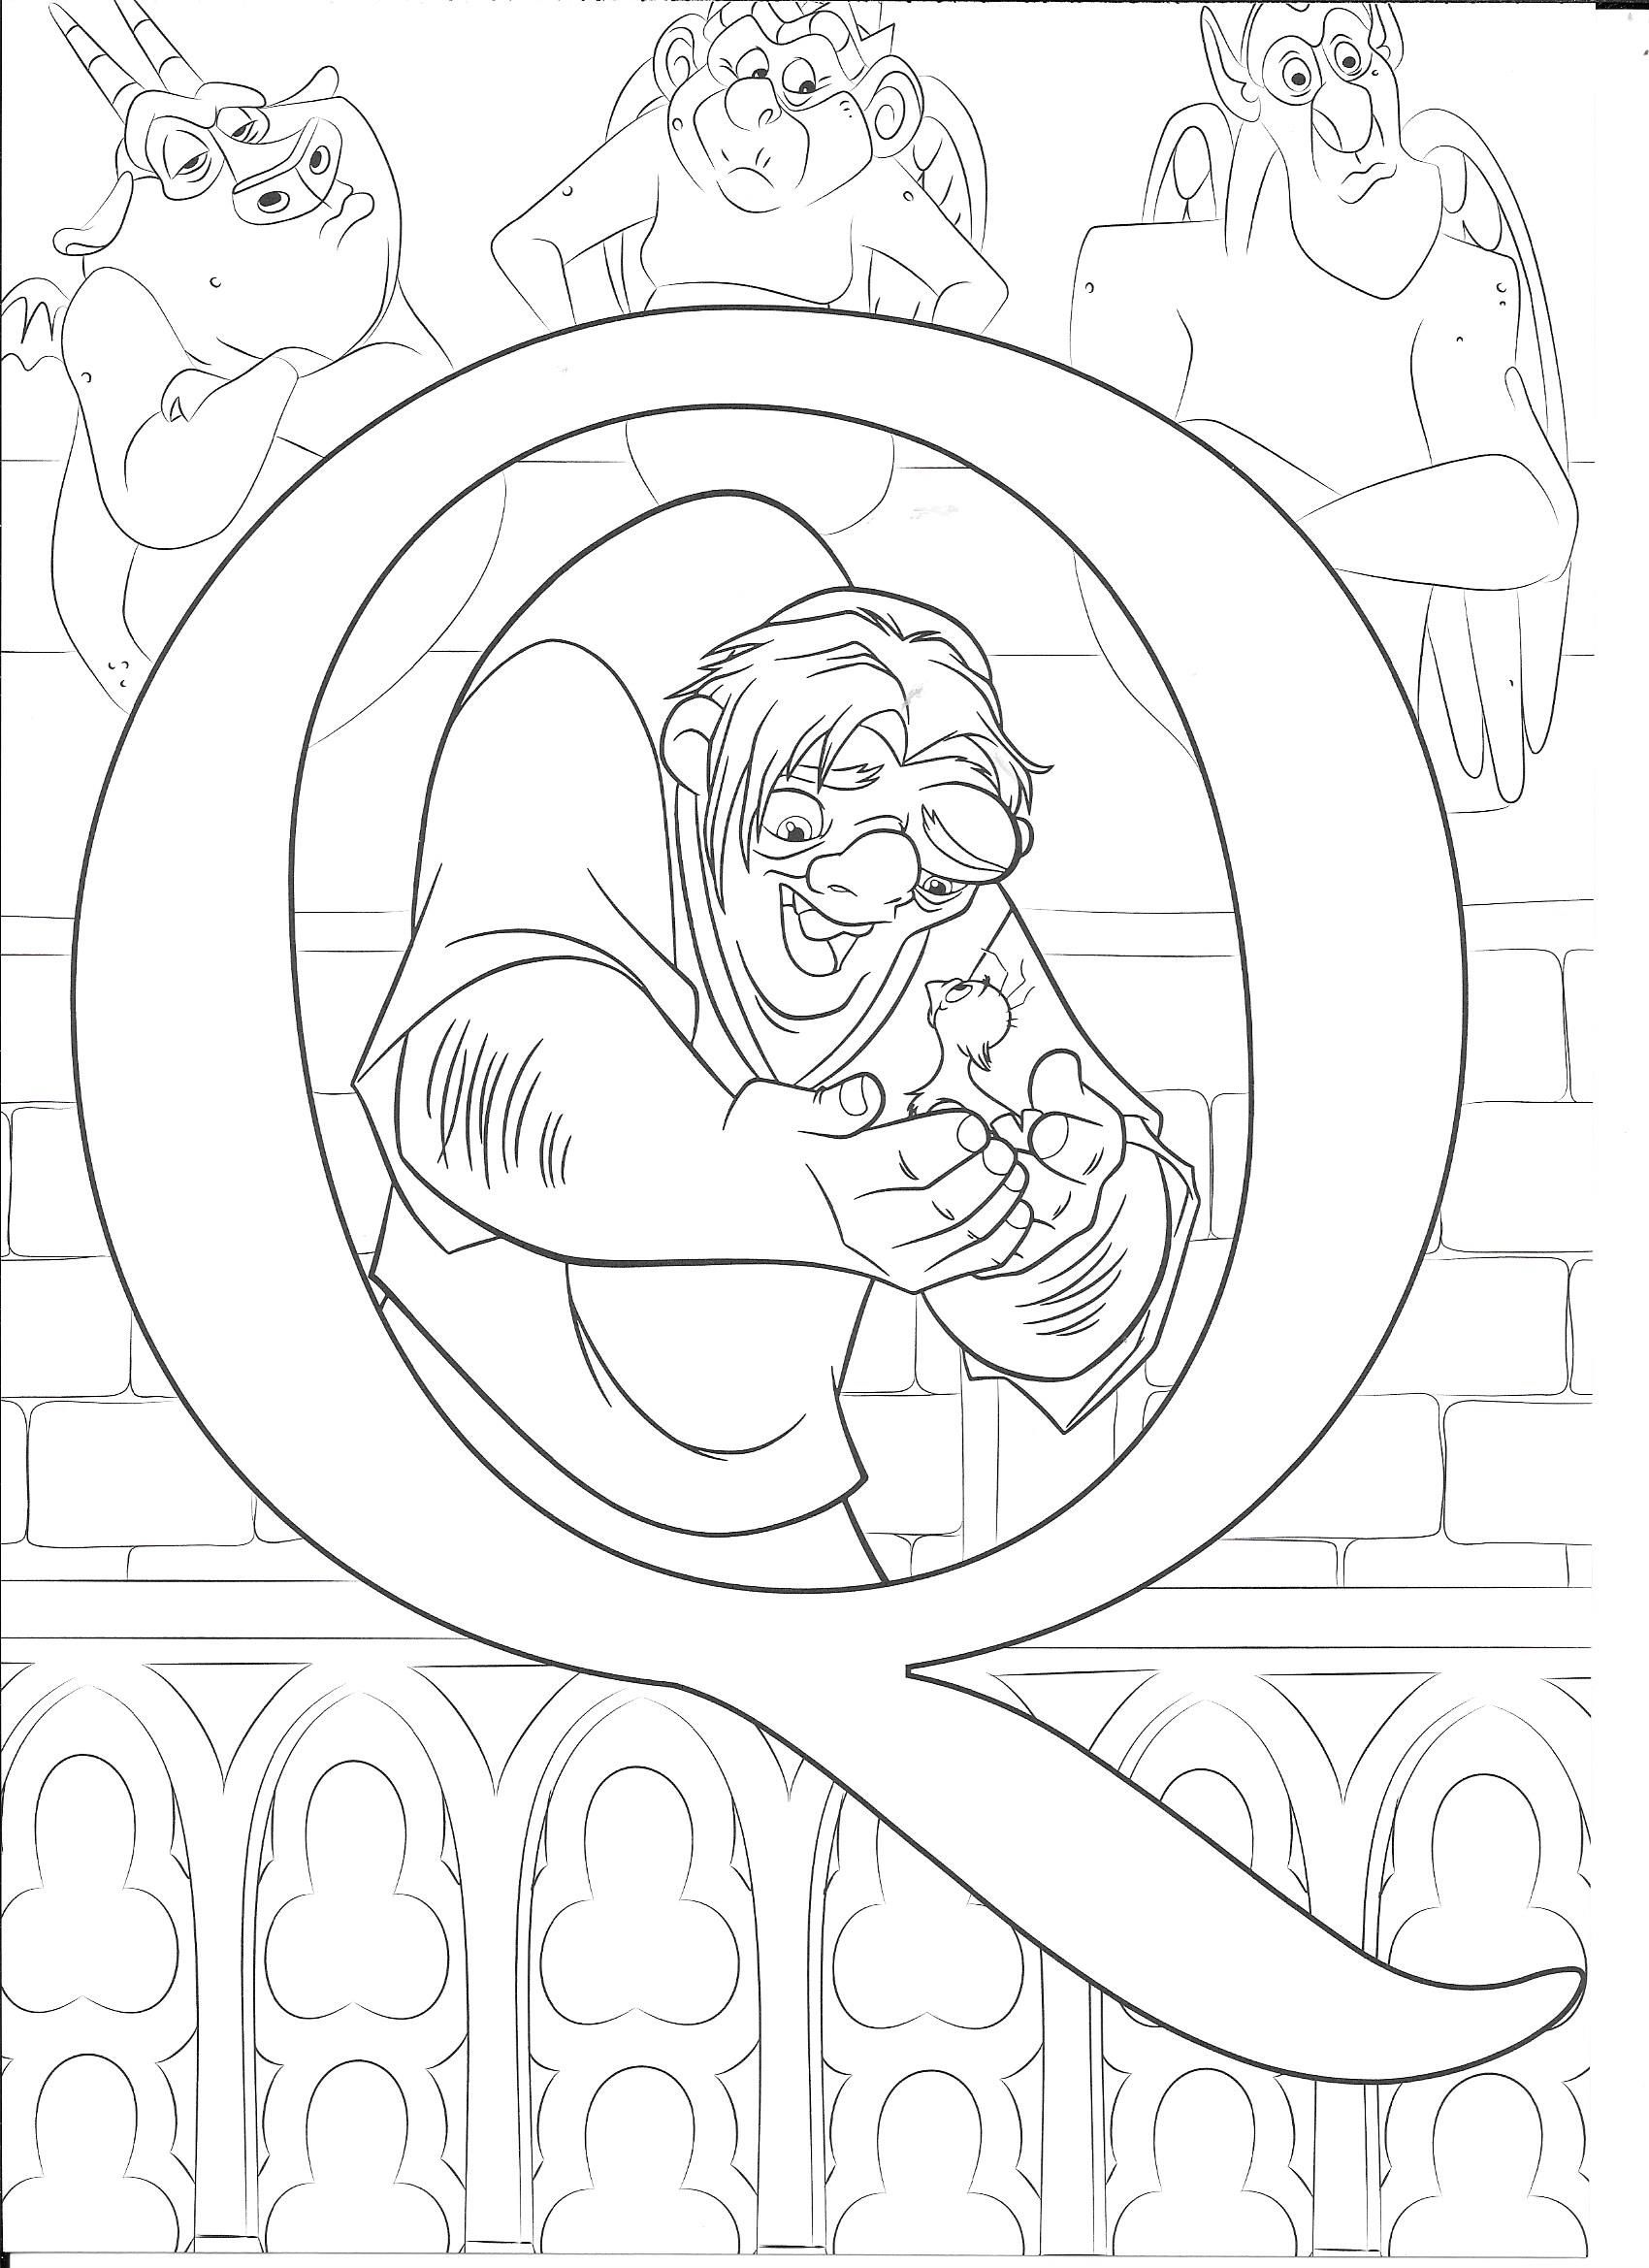 Coloring 2D Art Disney coloring sheets Disney